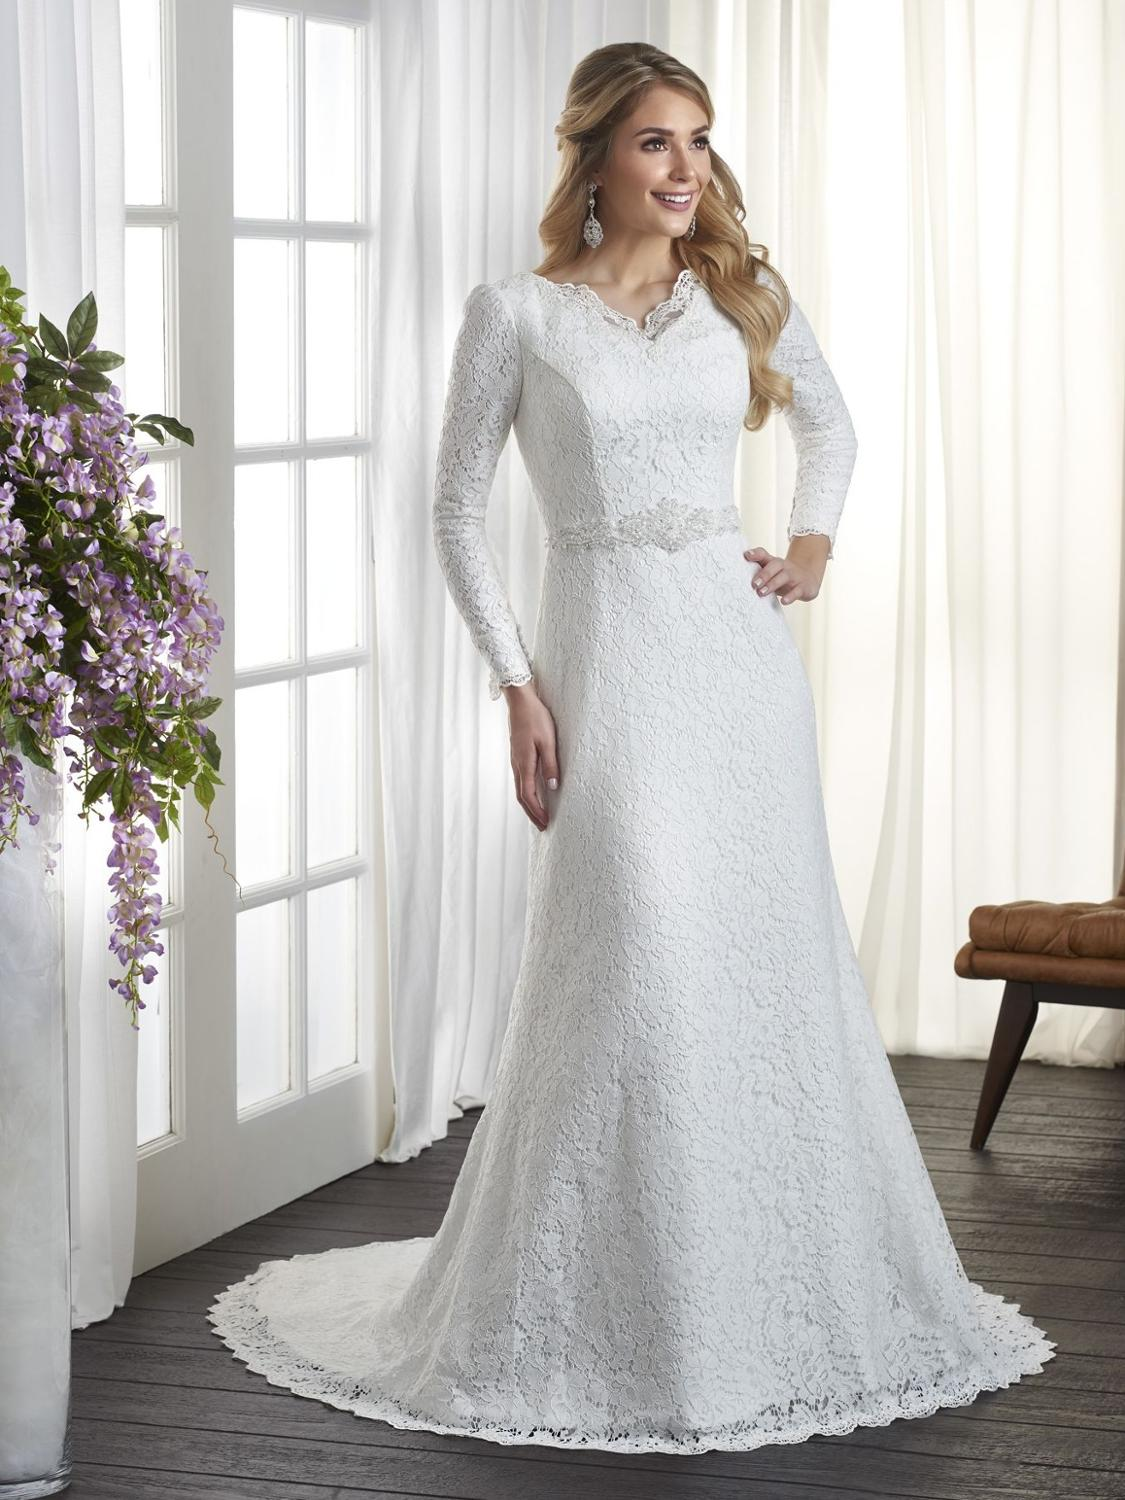 Vintage Lace Mermaid Modest Wedding Dresses With Long Sleeves V Neck Simple LDS Bridal Gowns Full Sleeves Custom Made